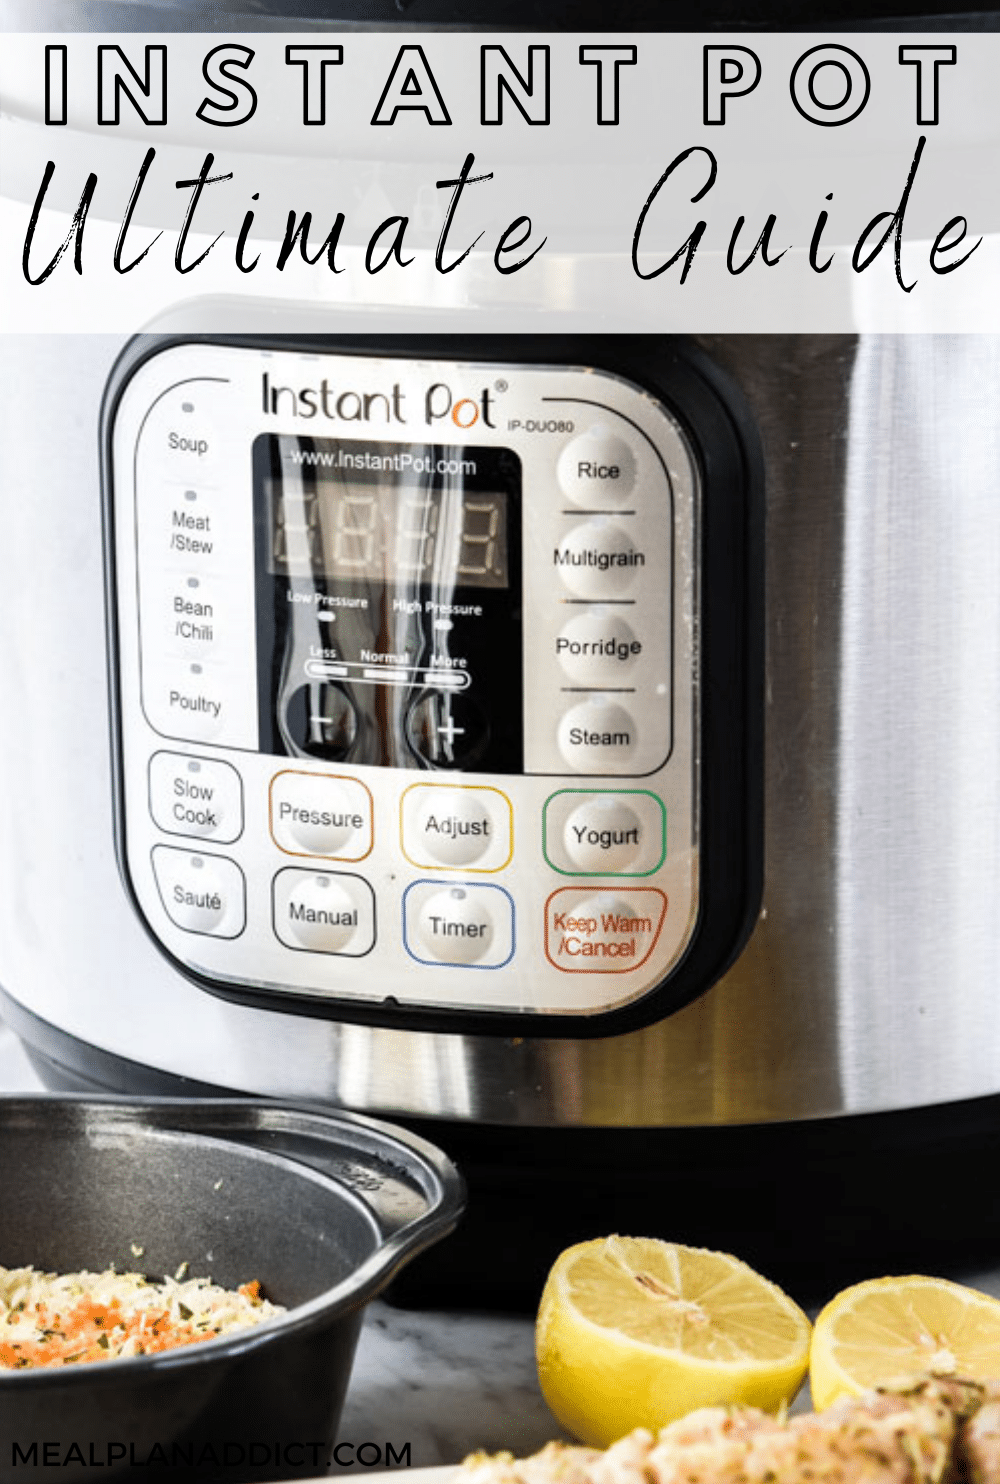 Instant Pot Ultimate Guide   Meal Plan Addict